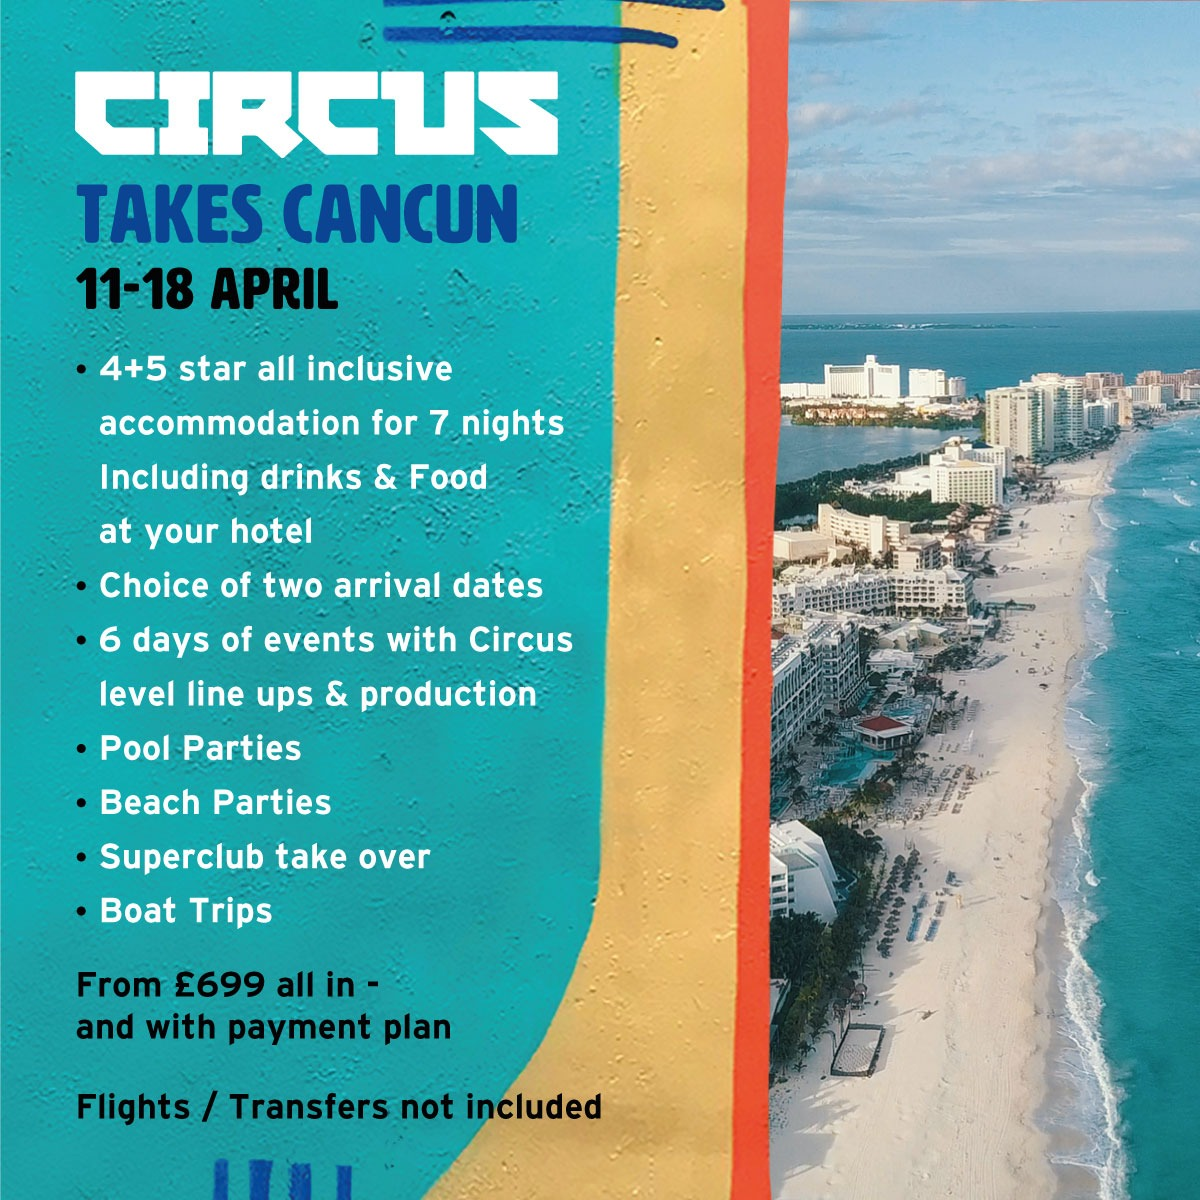 🇲🇽 @CIRCUSmusic are heading to Cancun 🌴🌞 11th - 18th April 2021!  Join them for a week of 30 degree SUNSHINE, SUPERCLUB takeovers, POOL parties and 7 nights in all inclusive accommodation!  Tickets on sale on 8th July, sign up here - https://t.co/M6Z5eGe5nZ https://t.co/WbEwAFOidA